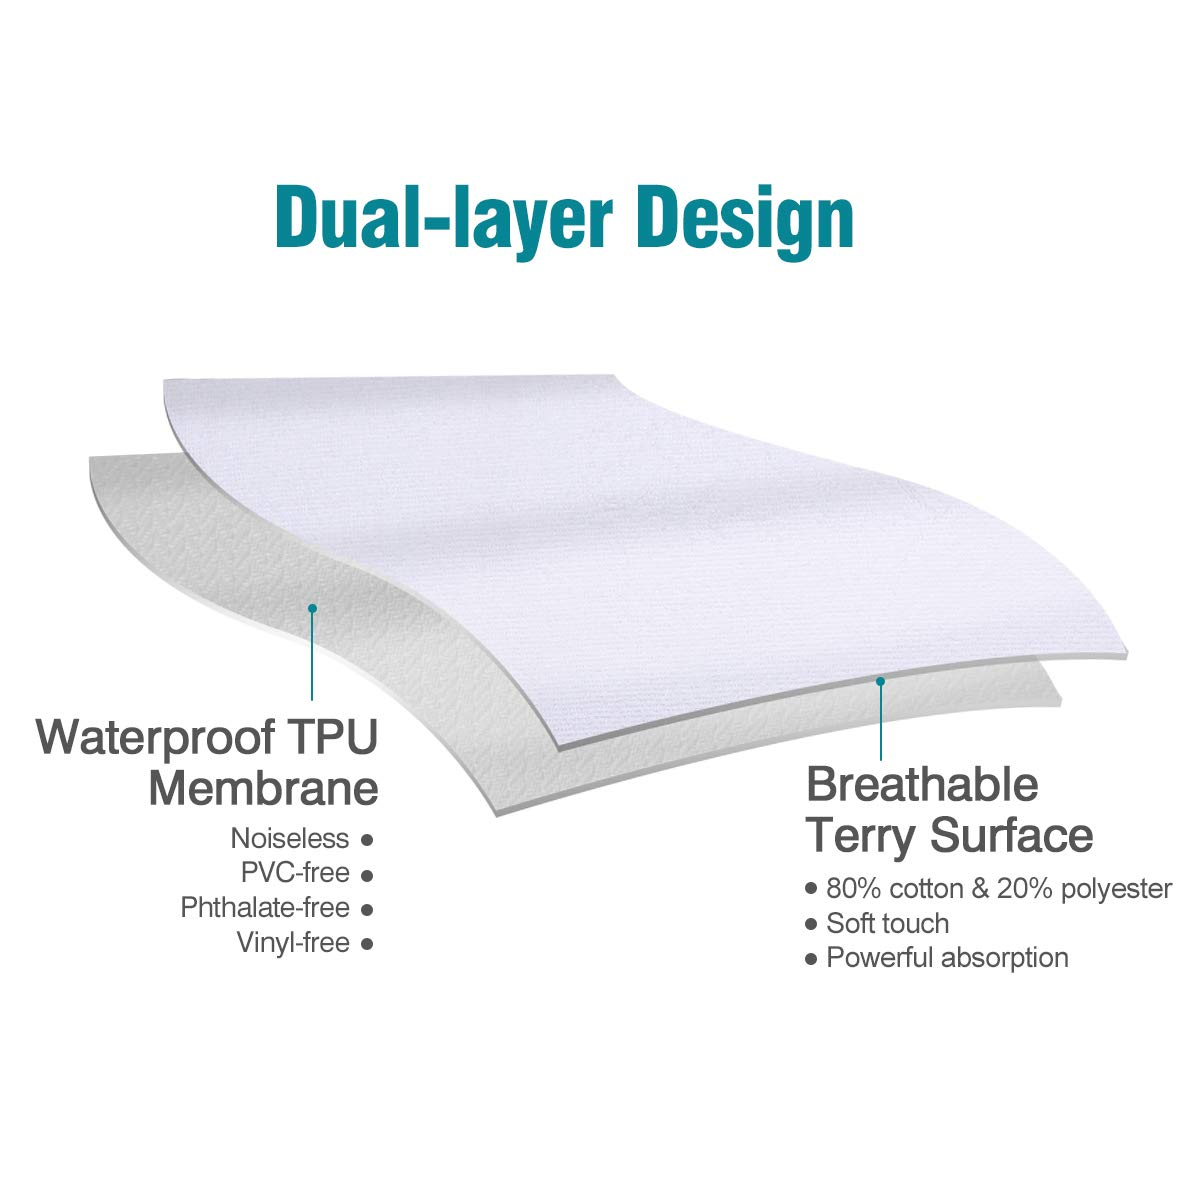 Docamor 100% Waterproof Mattress Protector, Hypoallergenic Mattress Cover with Premium Cotton Terry Surface - Vinyl Free - King Size - 3 Year Warranty by Docamor (Image #2)